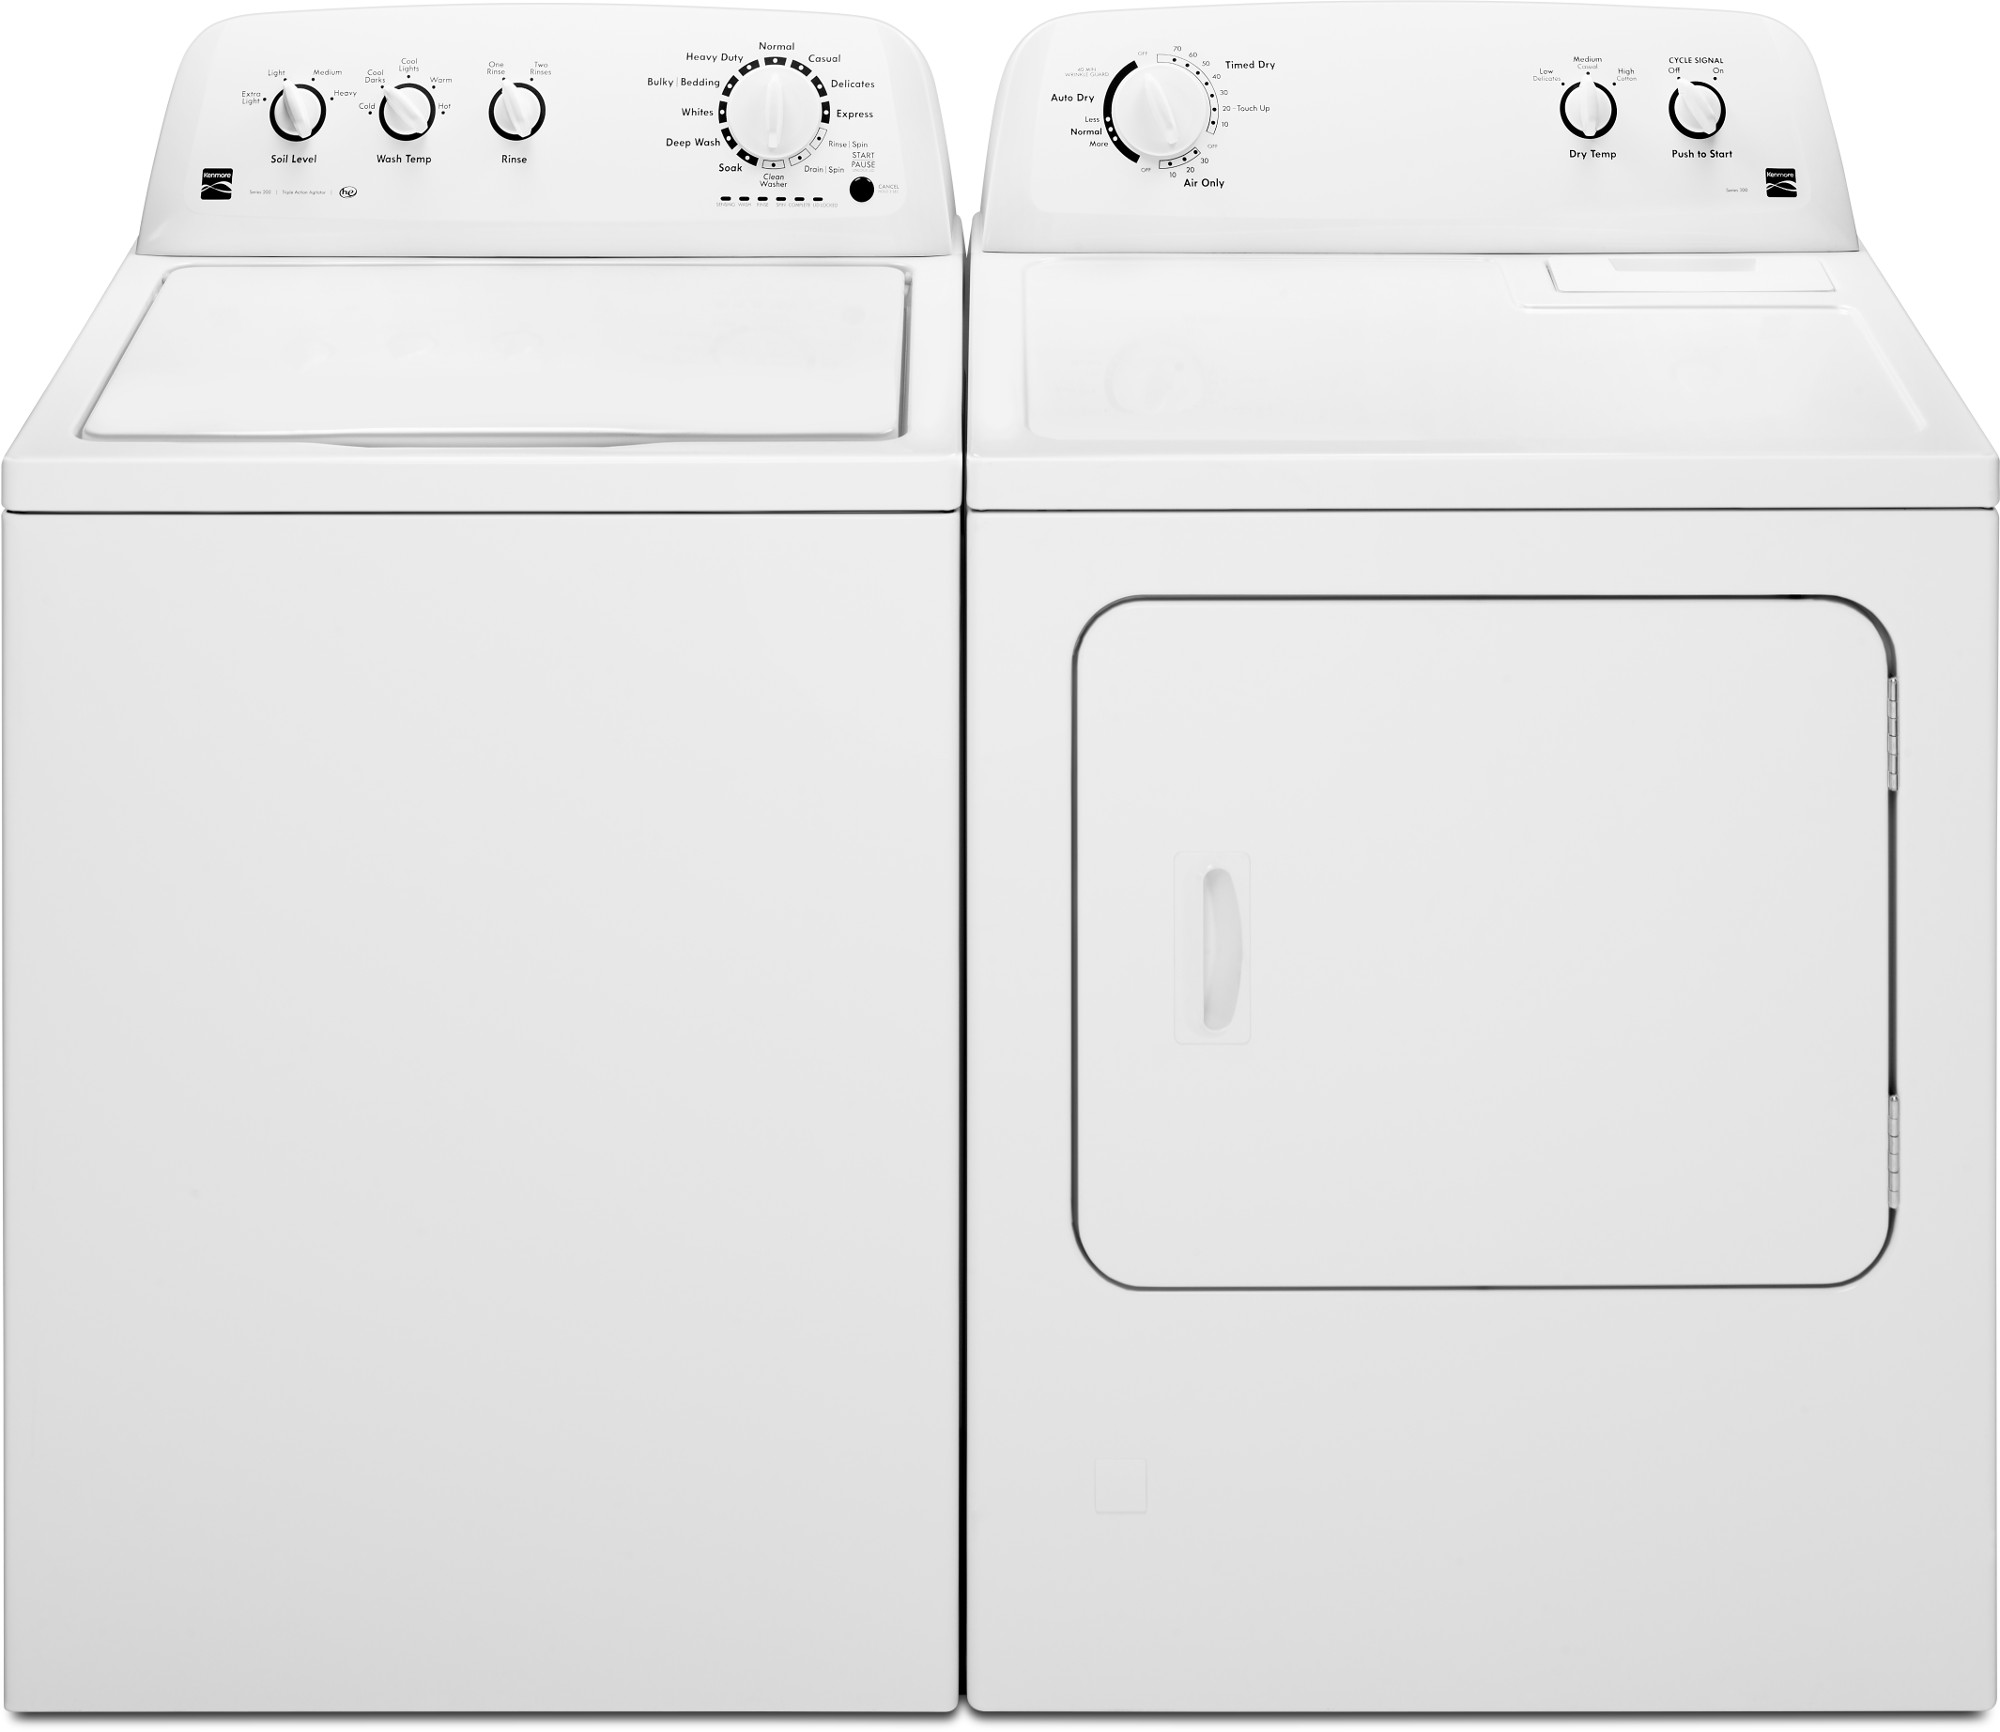 3.6 cu. ft. Agitator Top-Load Washer & Gas or Electric 7.0 cu. ft.Dryer - White